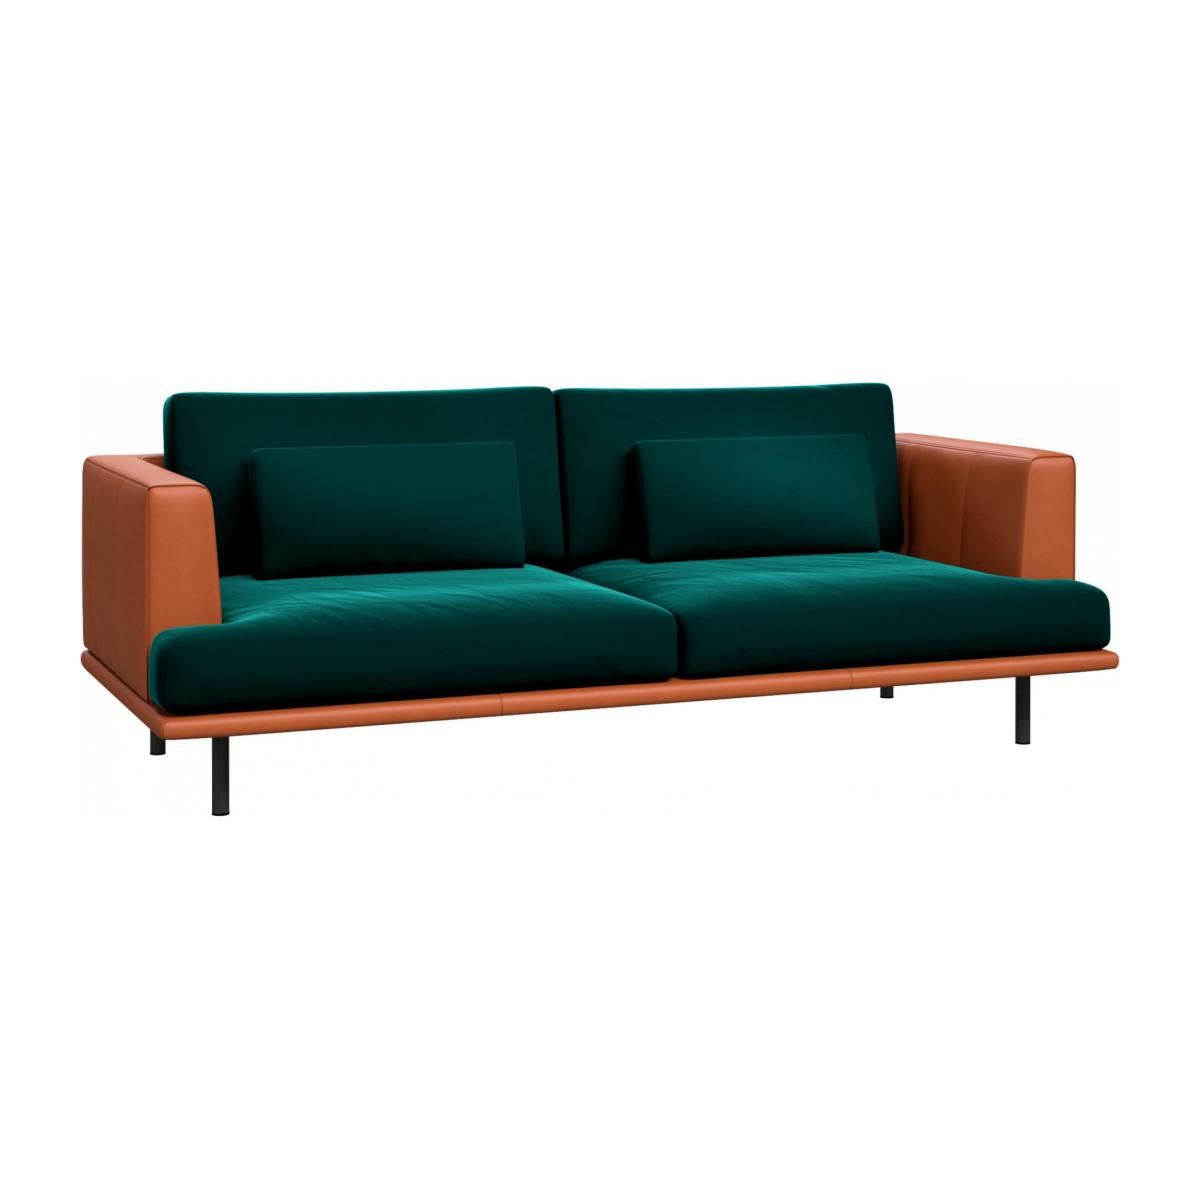 3 seater sofa in Super Velvet fabric, petrol blue with base and armrests in brown leather n°3